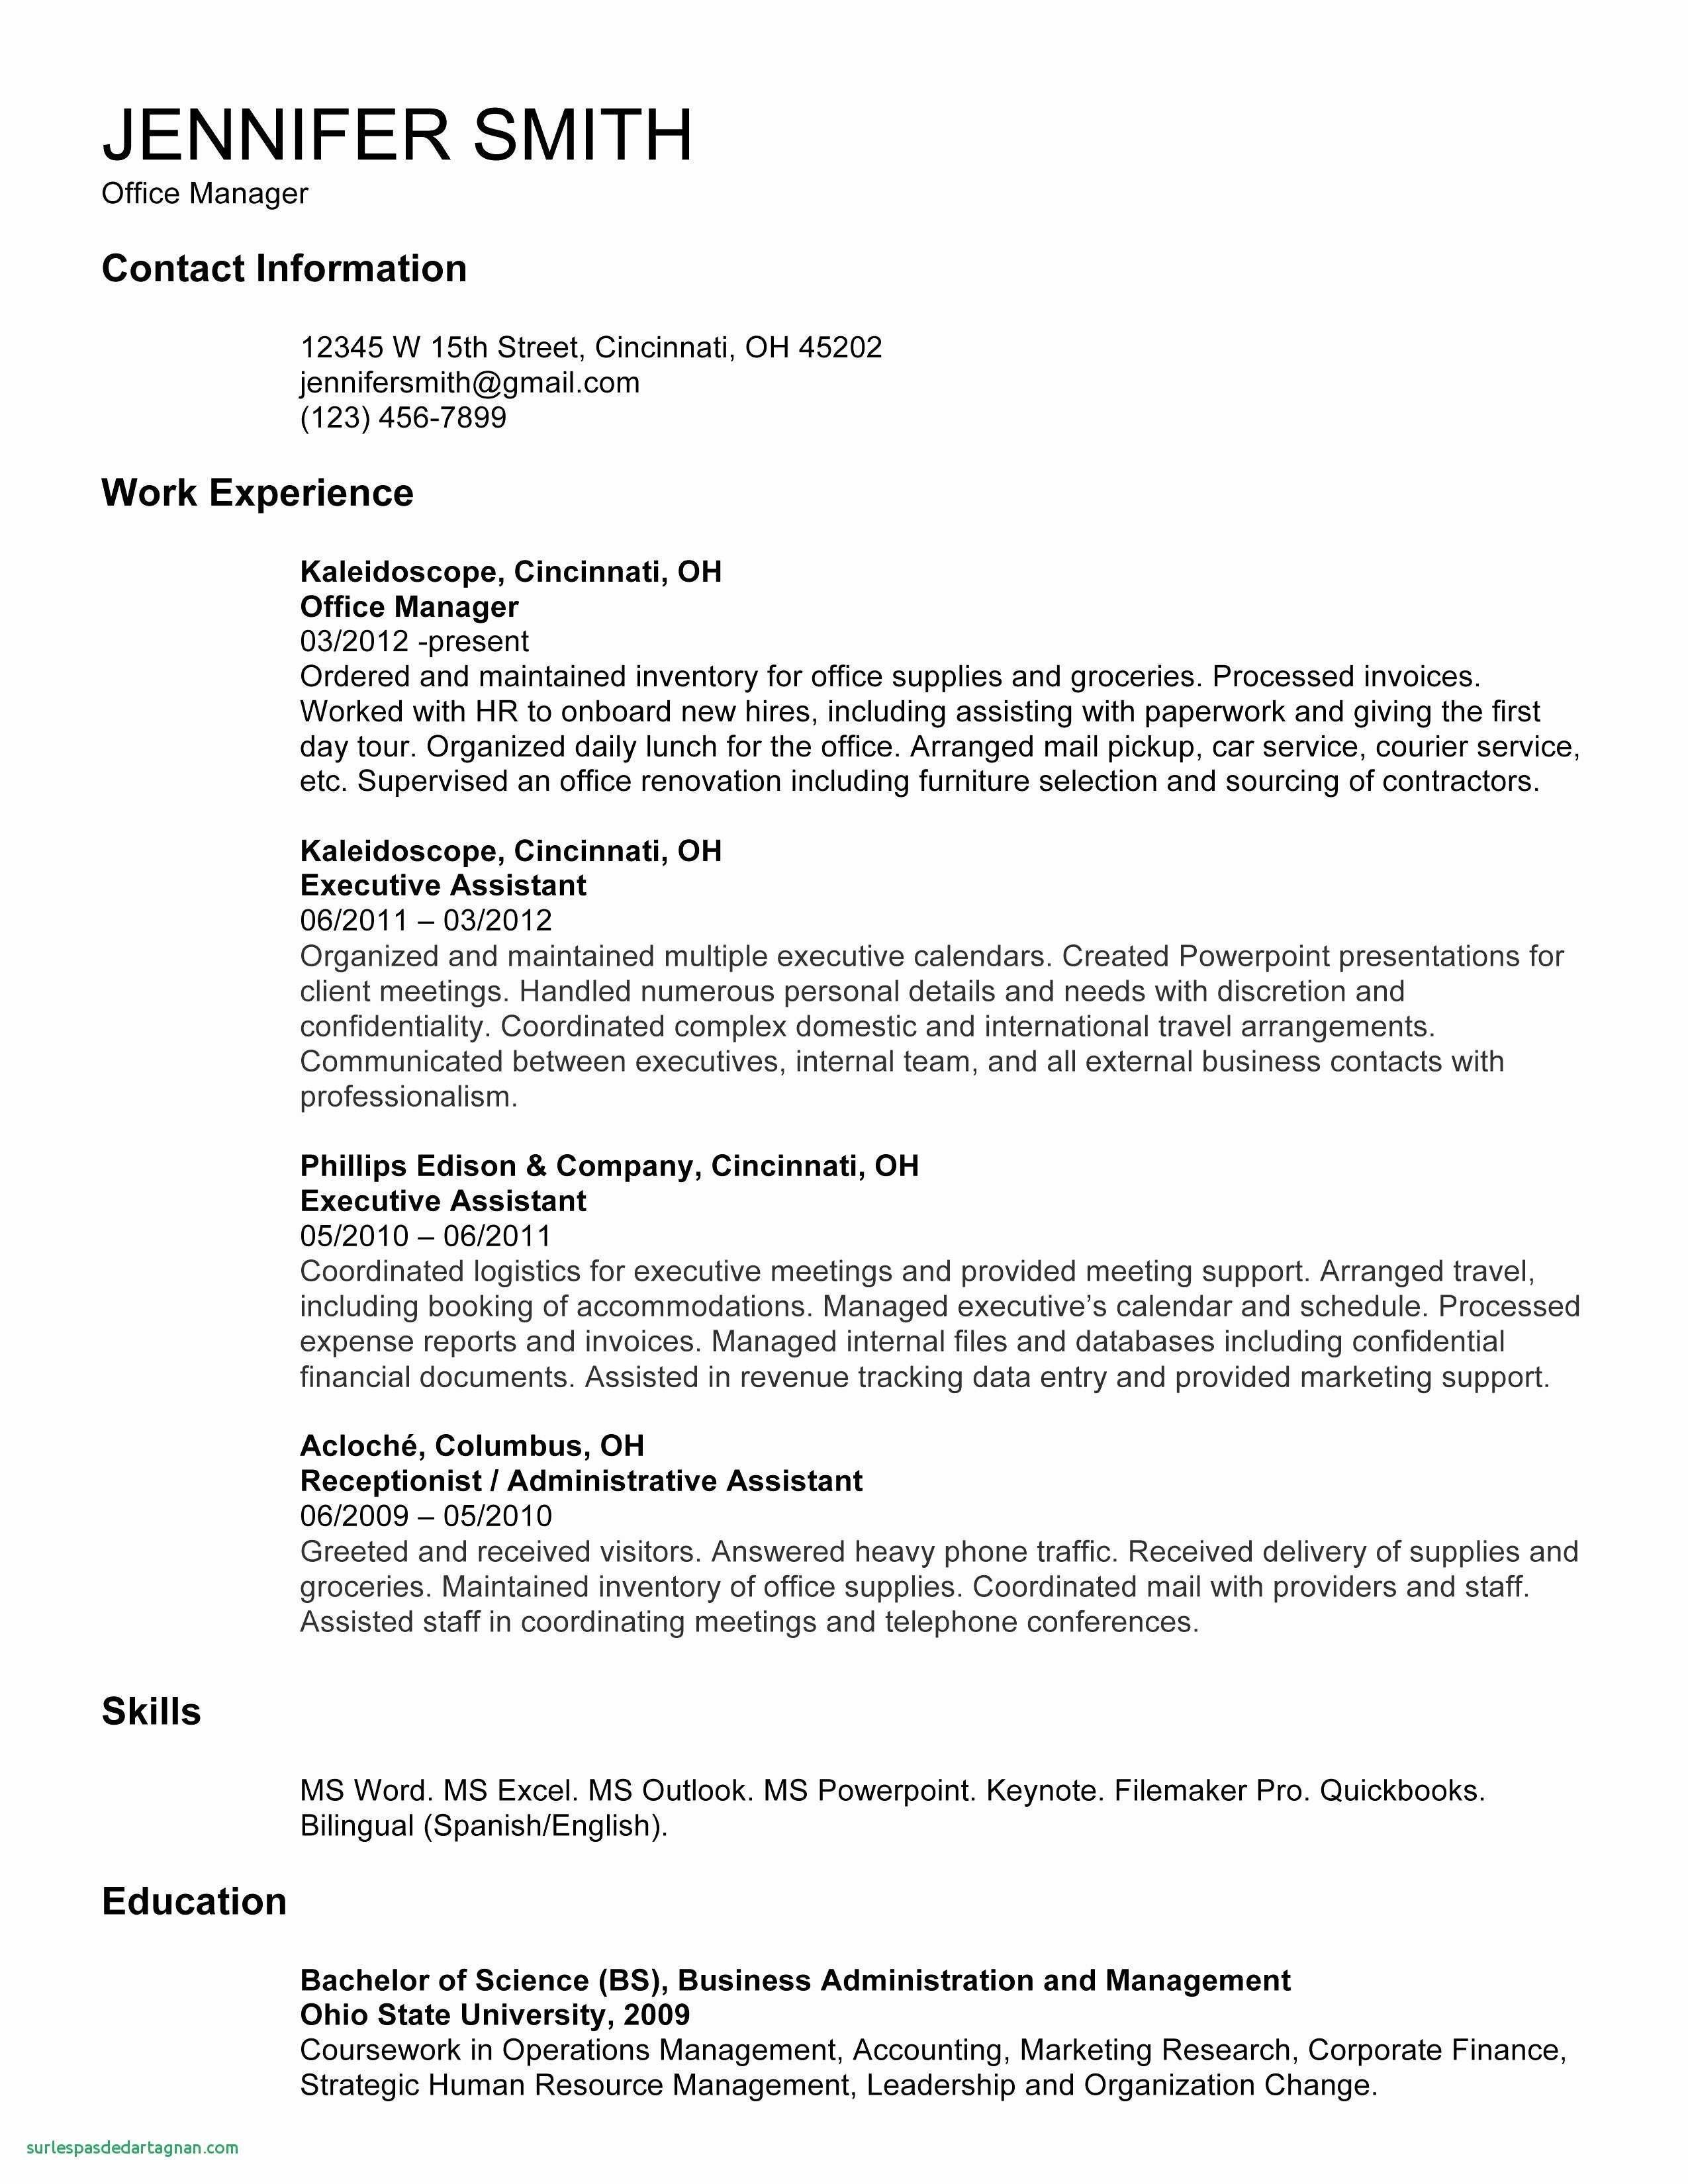 Free Teacher Resume Template - Free Templates for Resumes to Download Valid ¢Ë†Å¡ Resume Template